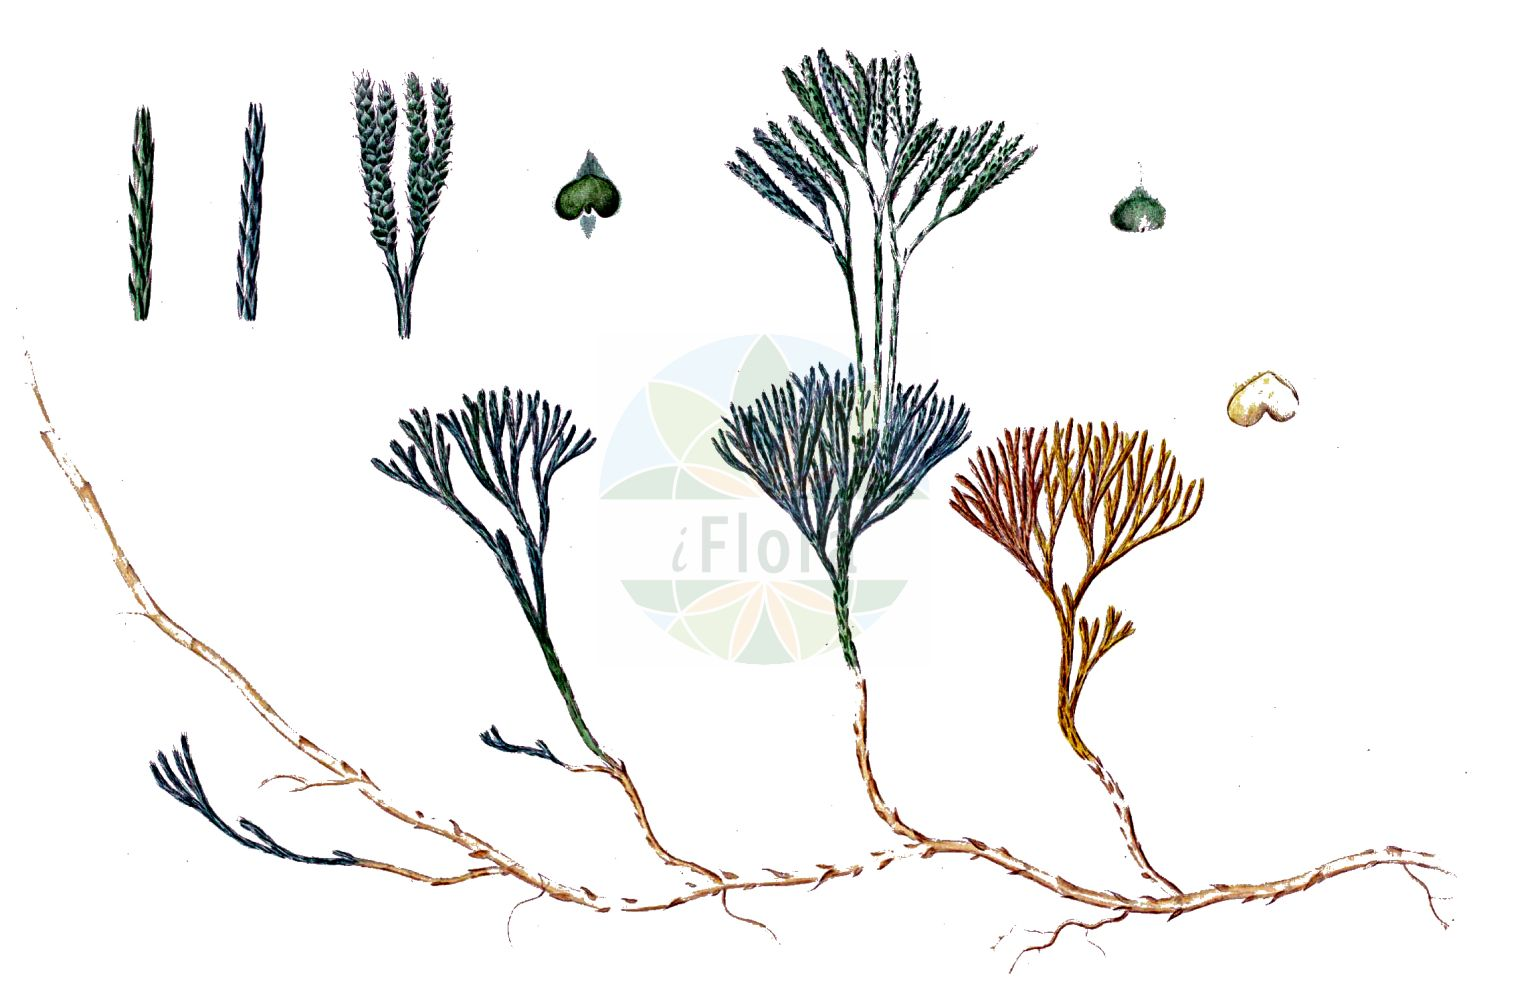 Historische Abbildung von Lycopodium complanatum (Gewoehnlicher Flachbaerlapp - Issler's Clubmoss). Das Bild zeigt Blatt, Bluete, Frucht und Same. ---- Historical Drawing of Lycopodium complanatum (Gewoehnlicher Flachbaerlapp - Issler's Clubmoss).The image is showing leaf, flower, fruit and seed.(Lycopodium complanatum,Gewoehnlicher Flachbaerlapp,Issler's Clubmoss,Diphasiastrum complanatum,Diphasium anceps,Diphasium complanatum,Lycopodium anceps,Lycopodium complanatum,Lycopodium complanatum subsp. montellii,Gewoehnlicher Flachbaerlapp,Gewoehnlicher Flachbaerlapp,Issler's Clubmoss,Flat-stemmed Clubmoss,Groundcedar,Complanate Clubmoss,Lycopodium,Baerlapp,Clubmoss,Lycopodiaceae,Baerlappgewaechse,Clubmoss family,Blatt,Bluete,Frucht,Same,leaf,flower,fruit,seed,Oeder (1761-1883))